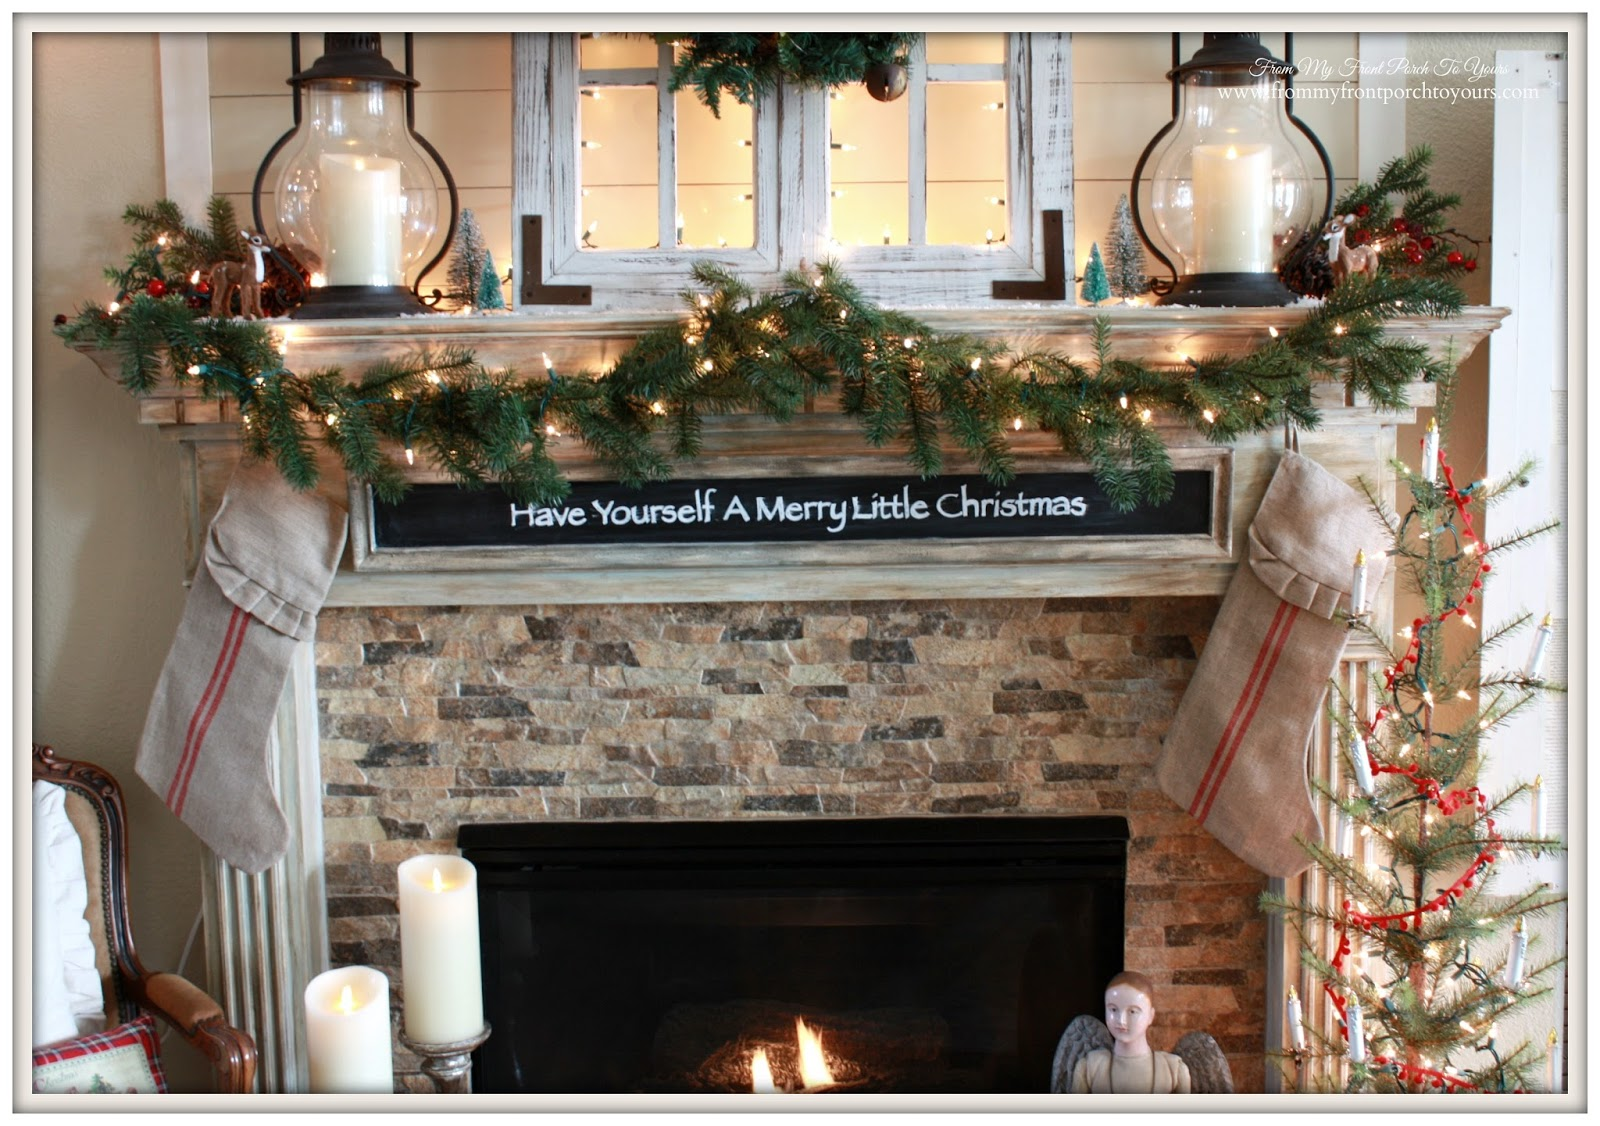 Grain Sack Stockings Christmas Mantel 2015 From My Front Porch To Yours